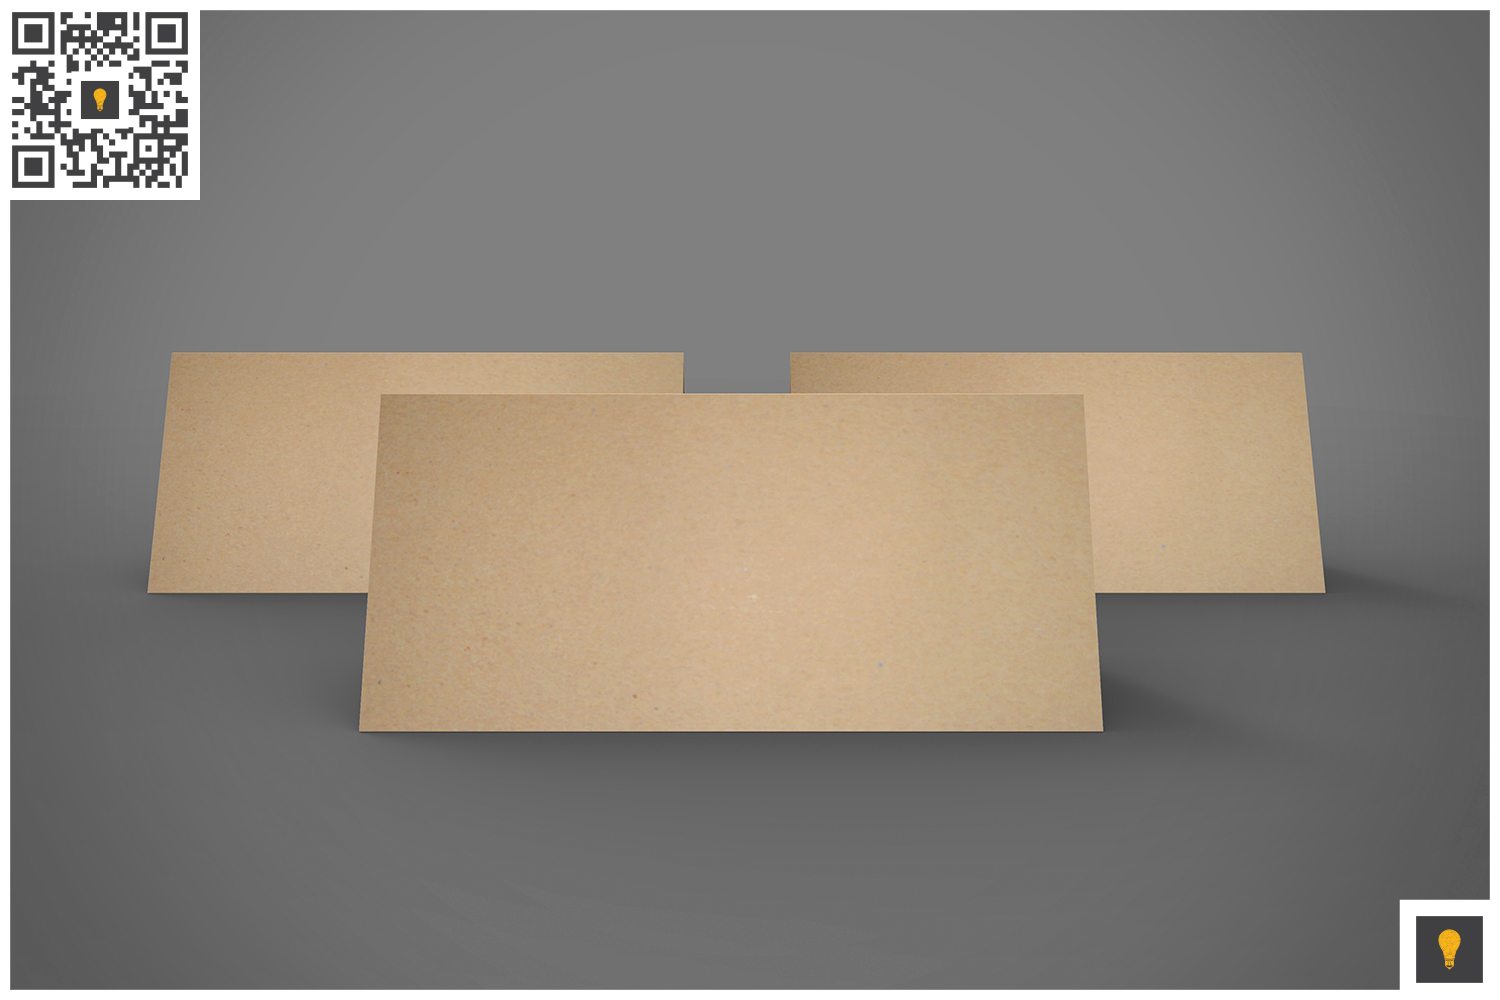 Table Tent 3D Render example image 10